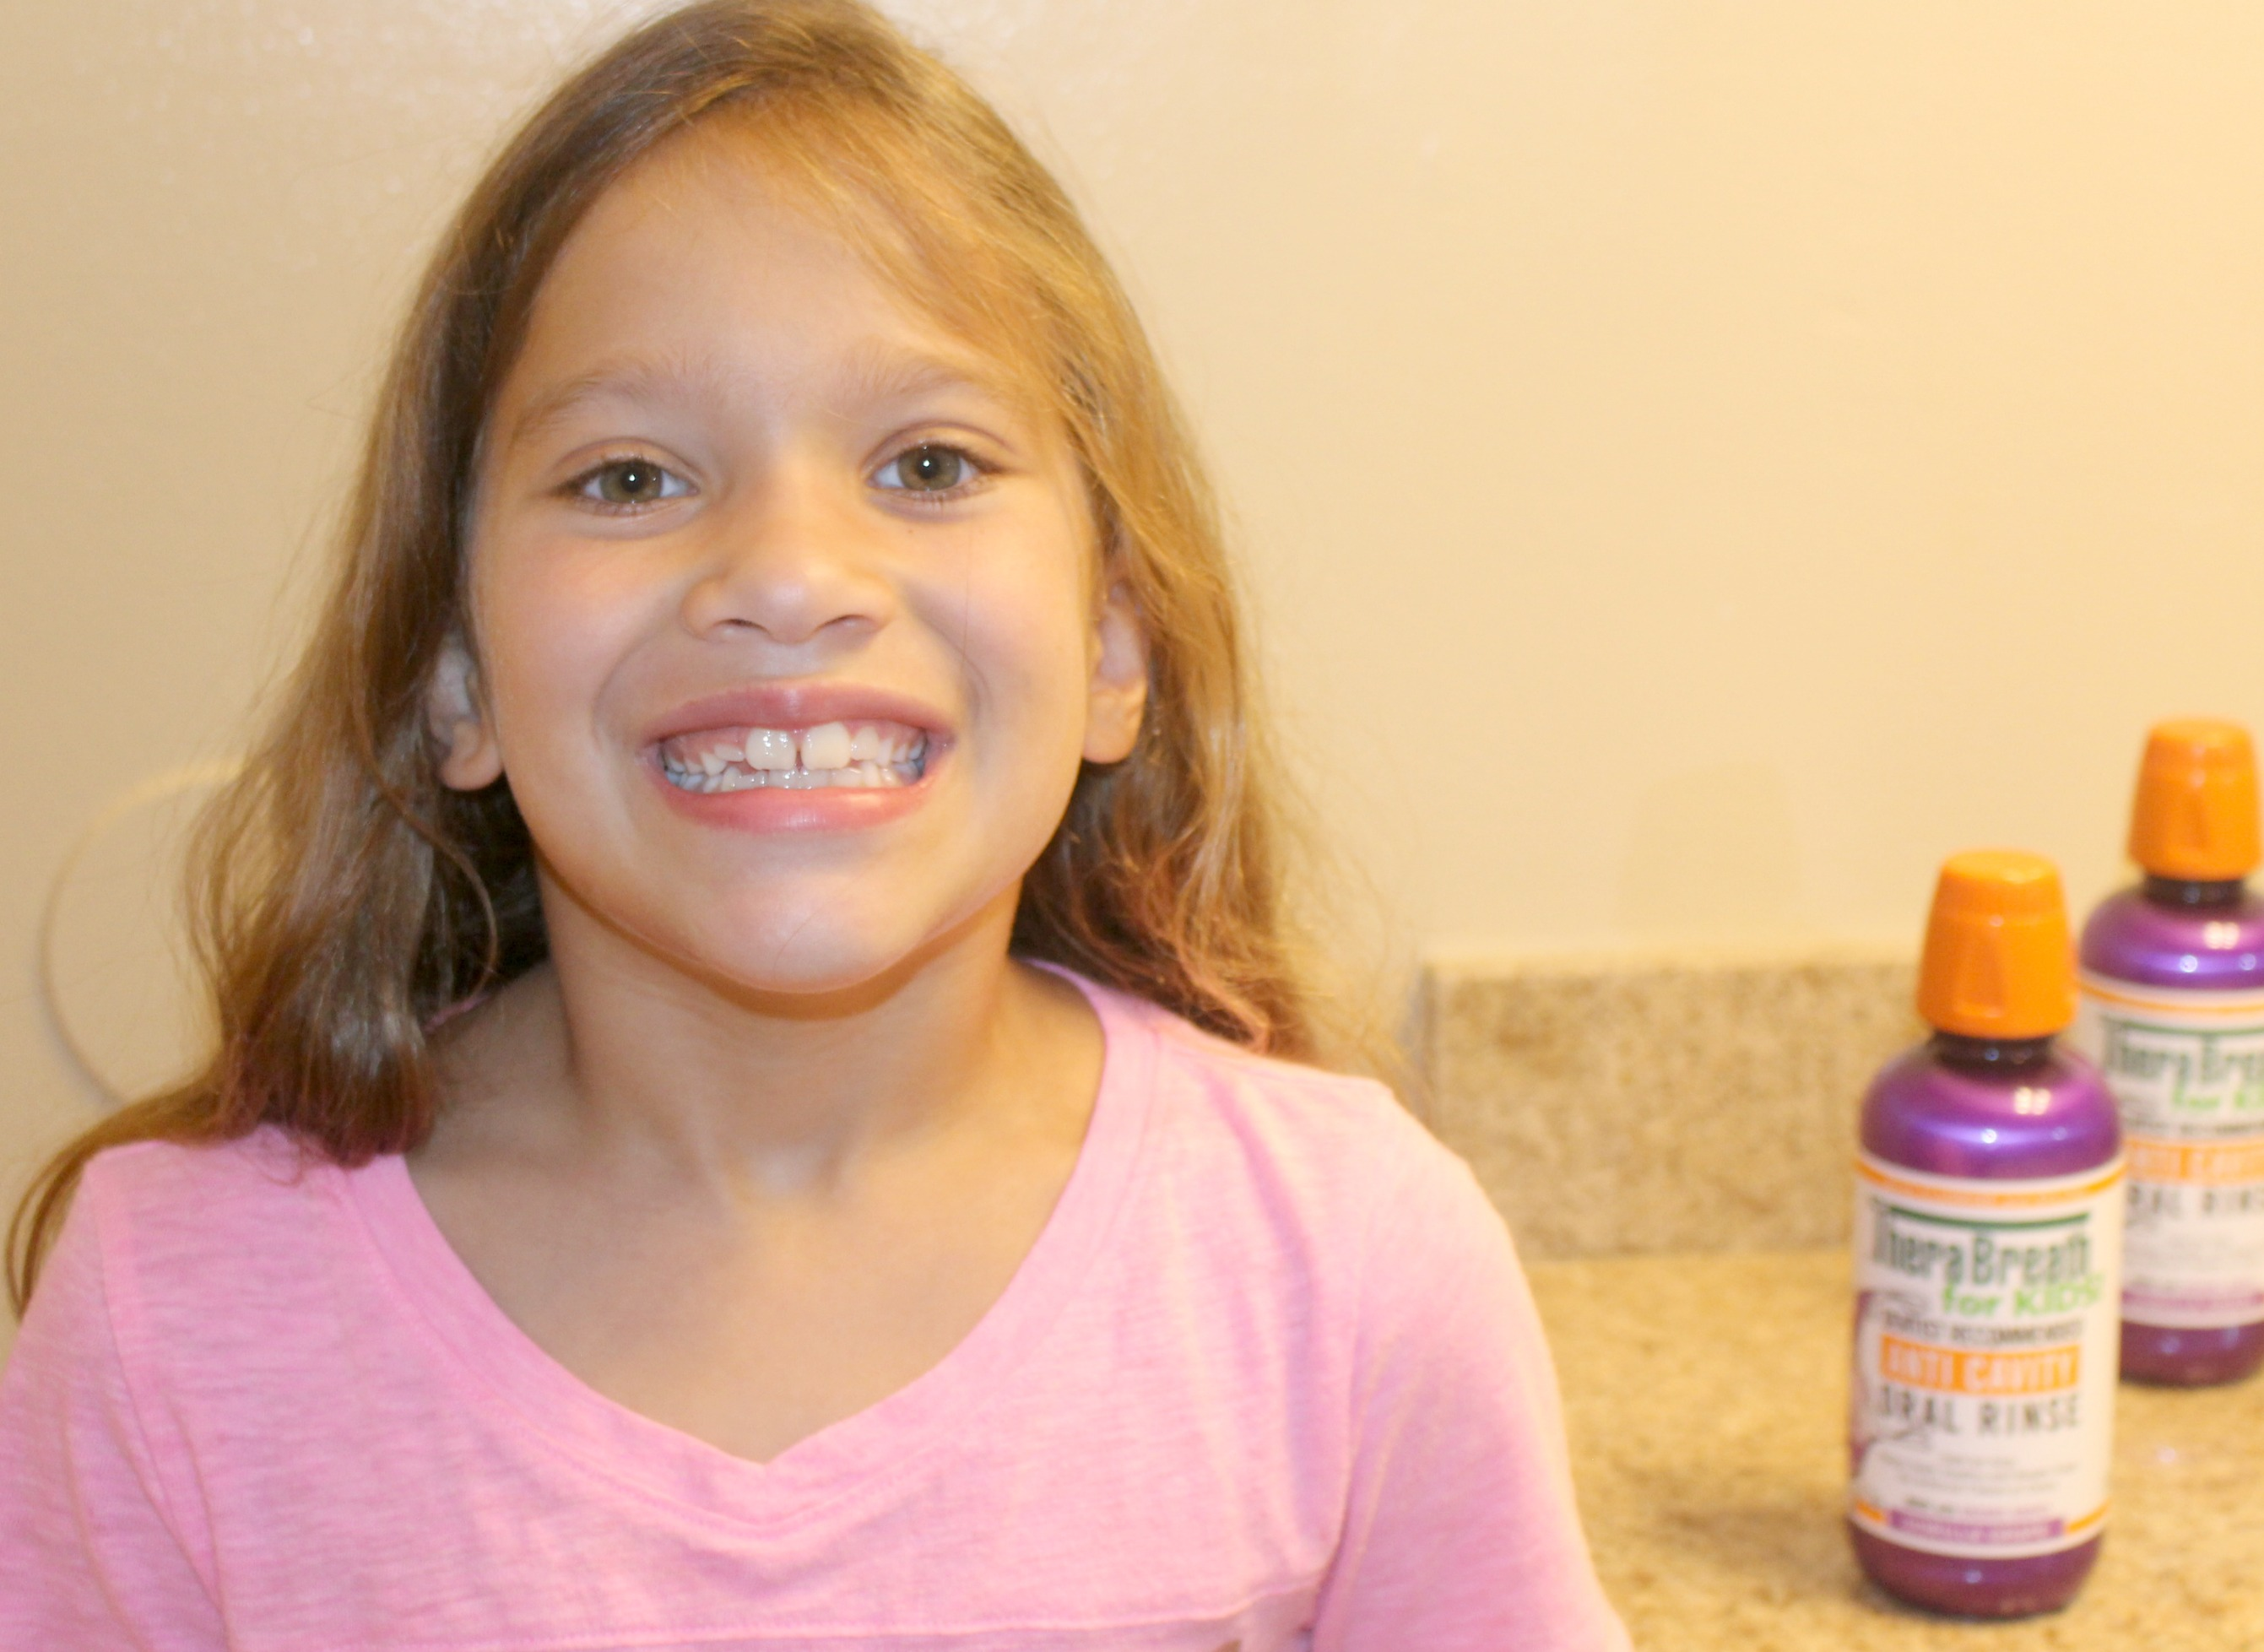 Ways-to-make-teeth-brushing-routine-fun-oral-health-kids-organic-mouthwash-coupon-smile-confidence